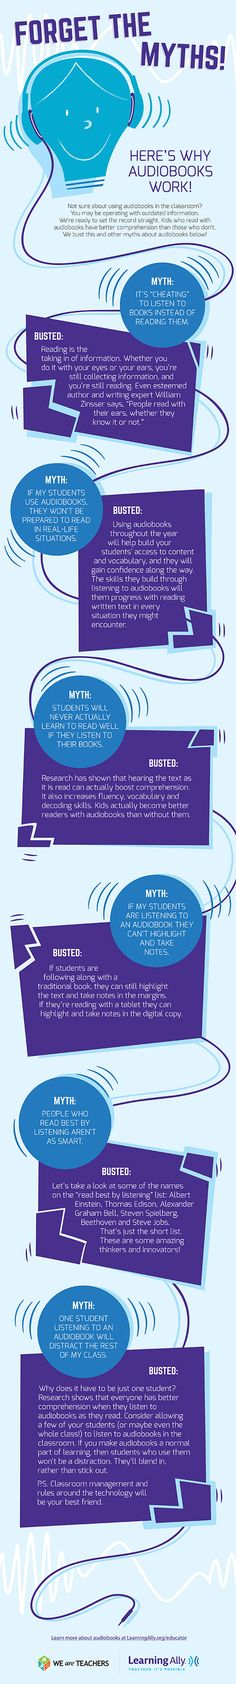 There are actually quite a few things you may not know about teaching with audiobooks. We explore some of the most pervasive myths in our latest infographic.